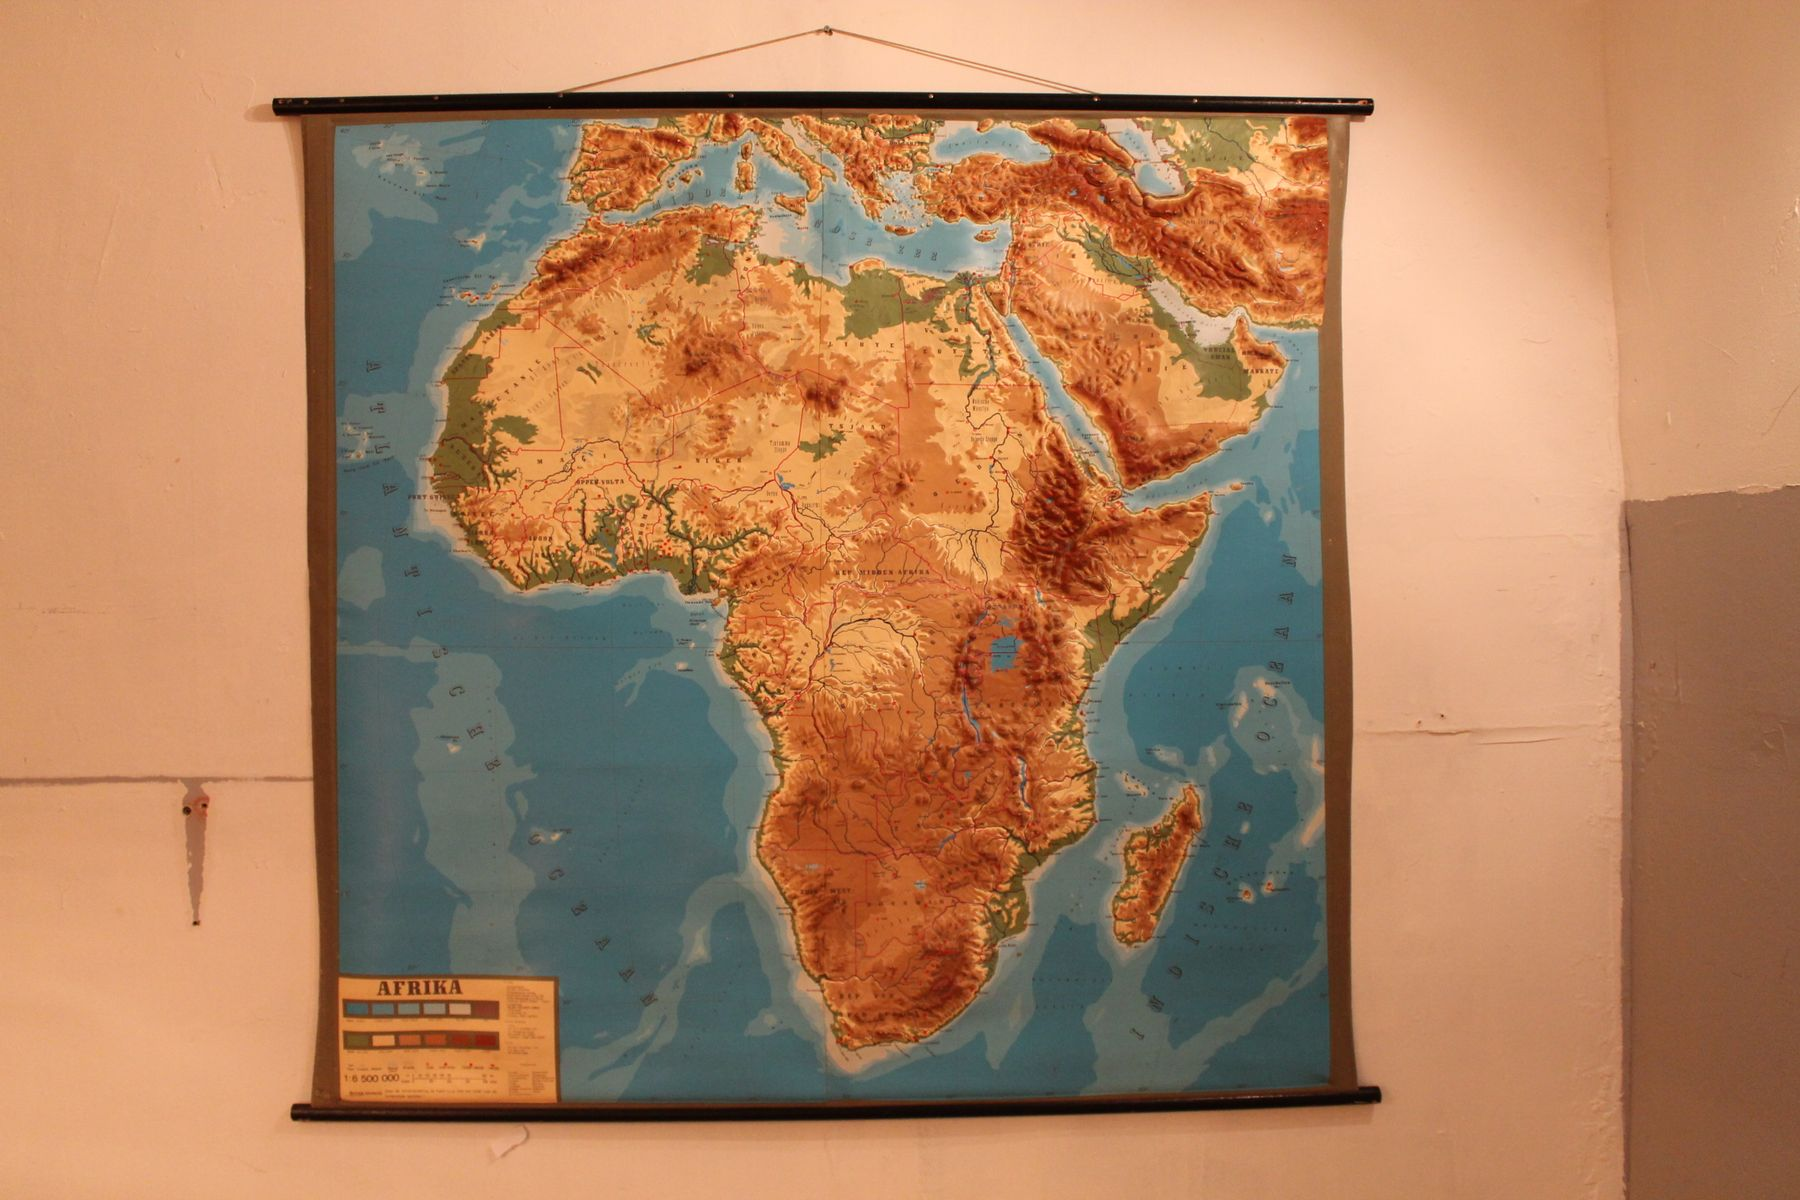 Vintage Relief Wall Map Africa 1960s For Sale At Pamono